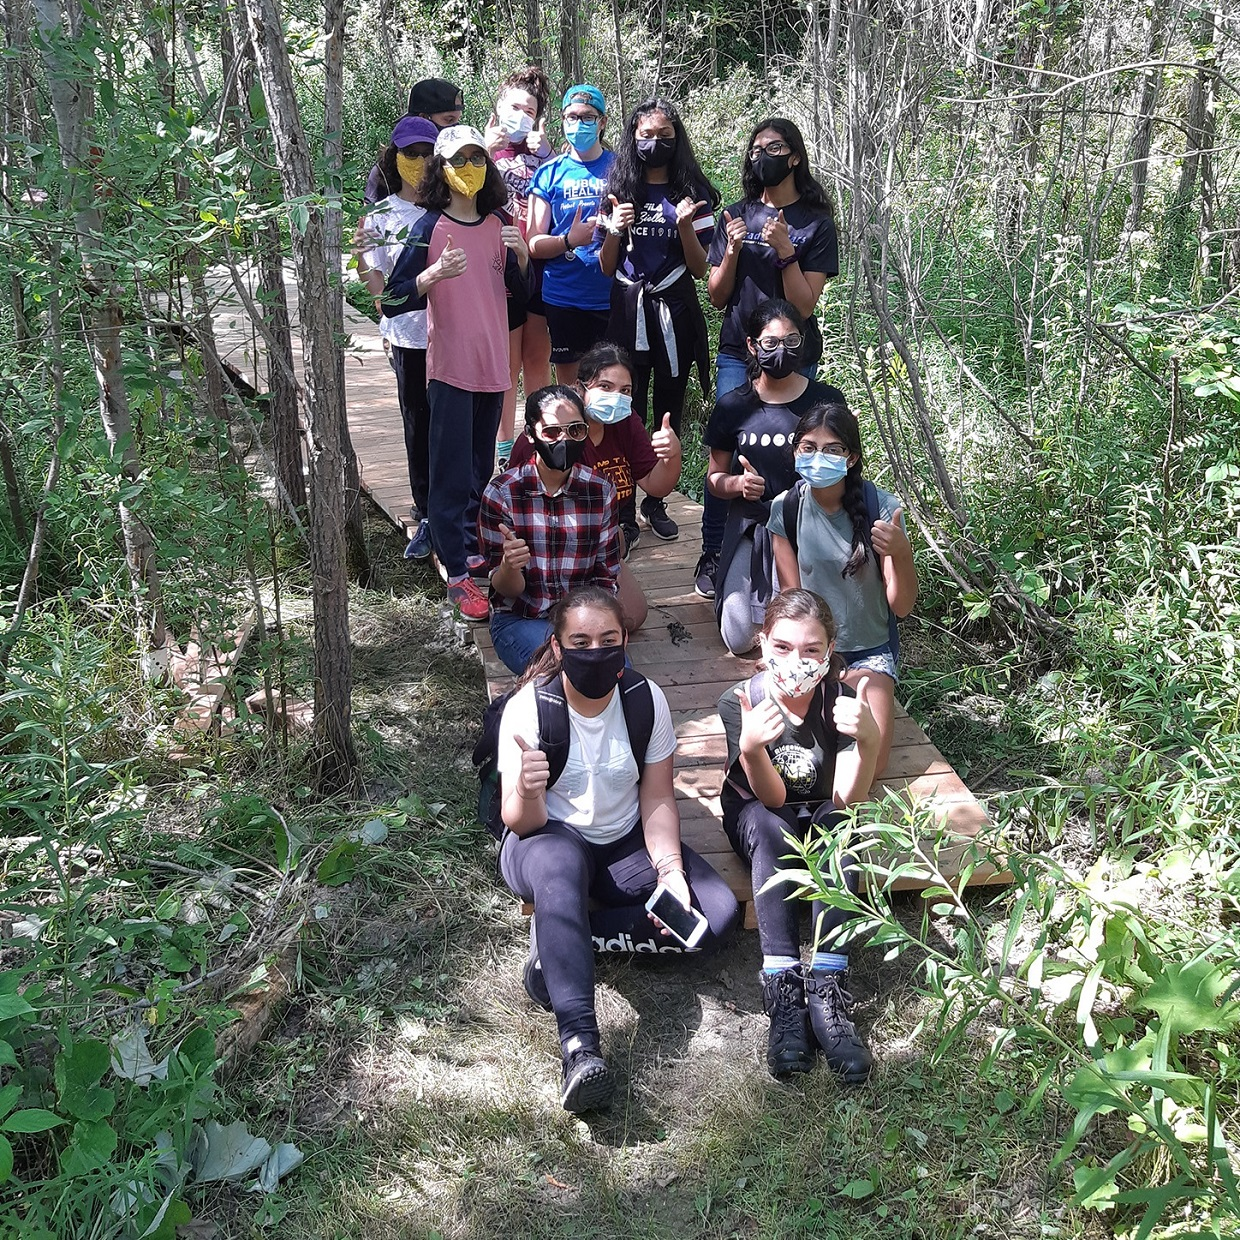 Participants in 2020 TRCA Girls Can Too program